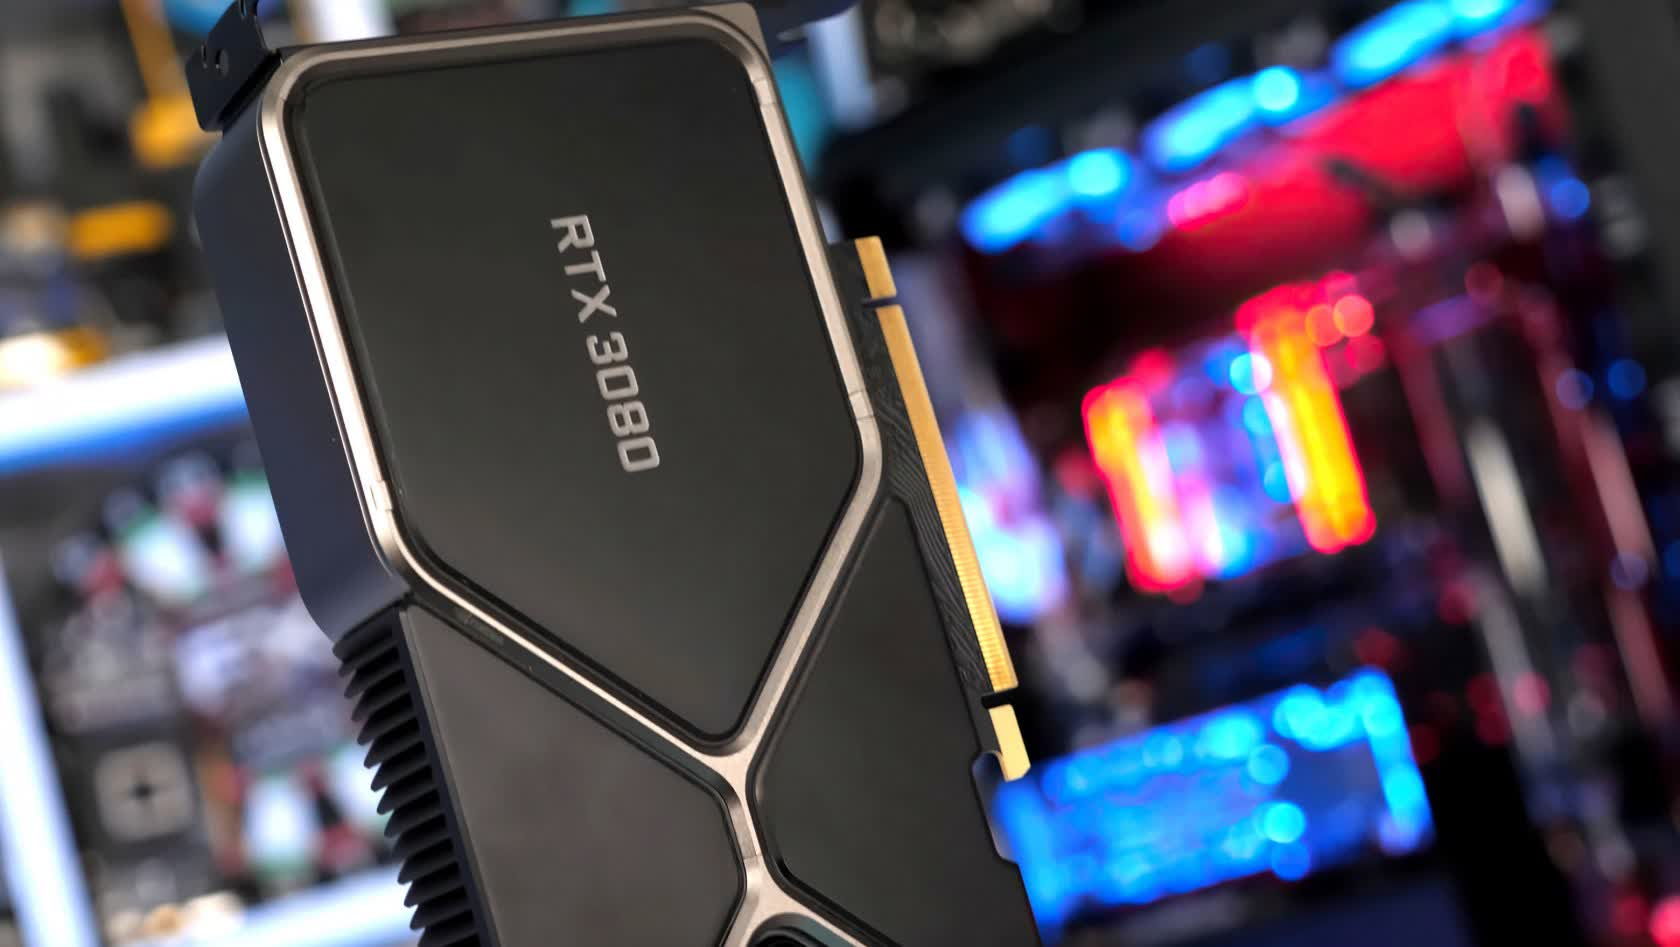 Nvidia has reportedly canceled its 20GB RTX 3080 and 16GB RTX 3070